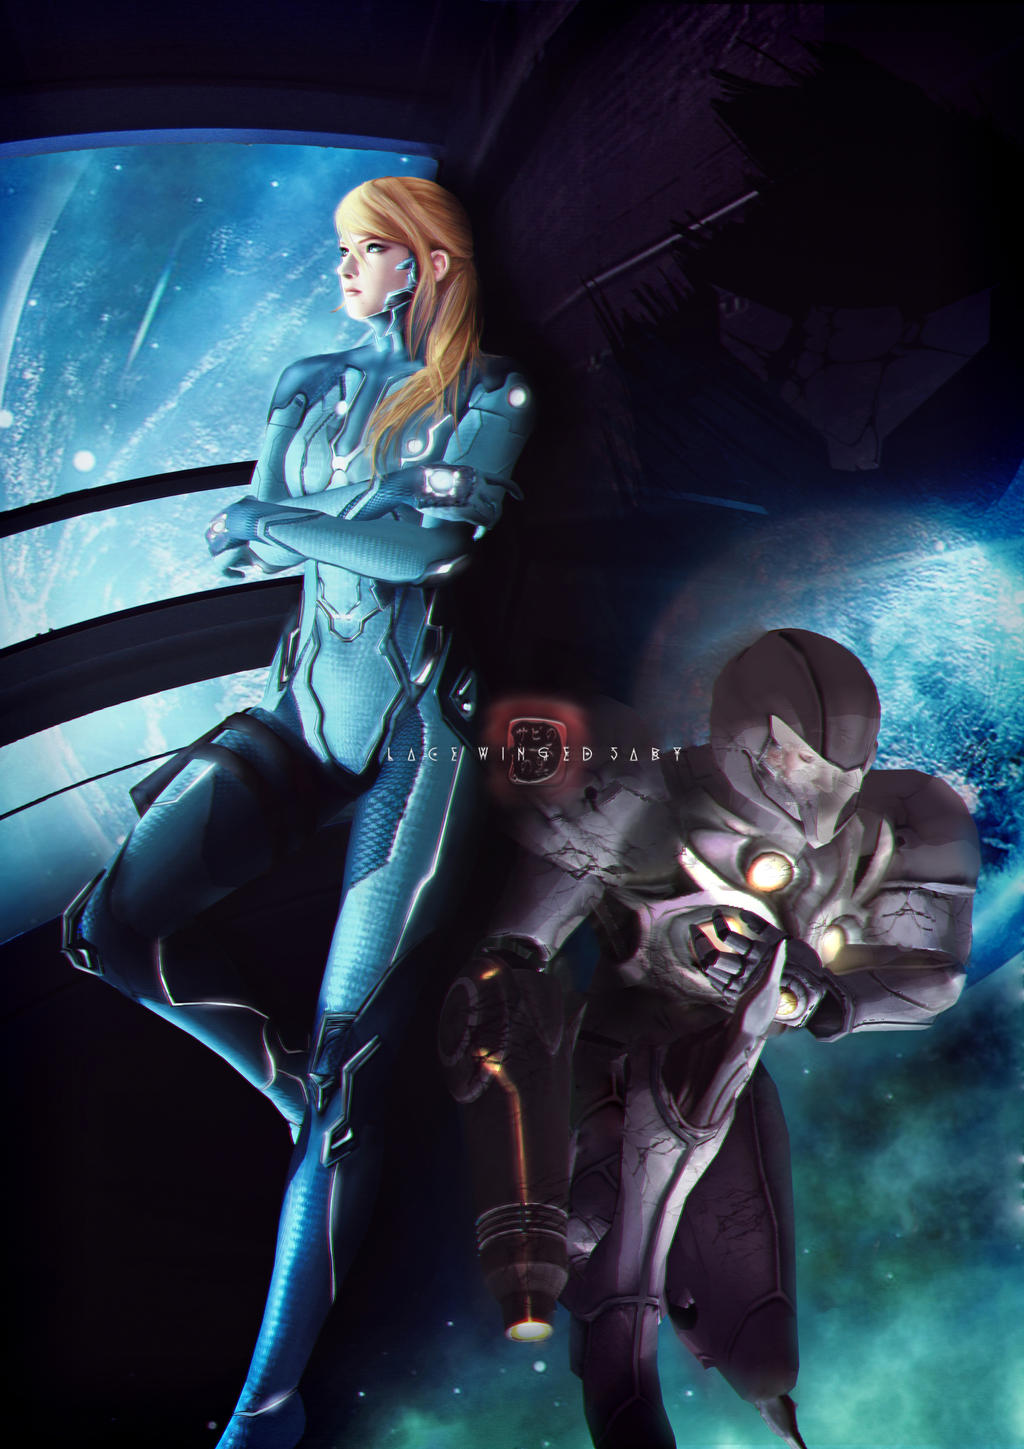 Samus Aran [Metroid] - Commission by LaceWingedSaby